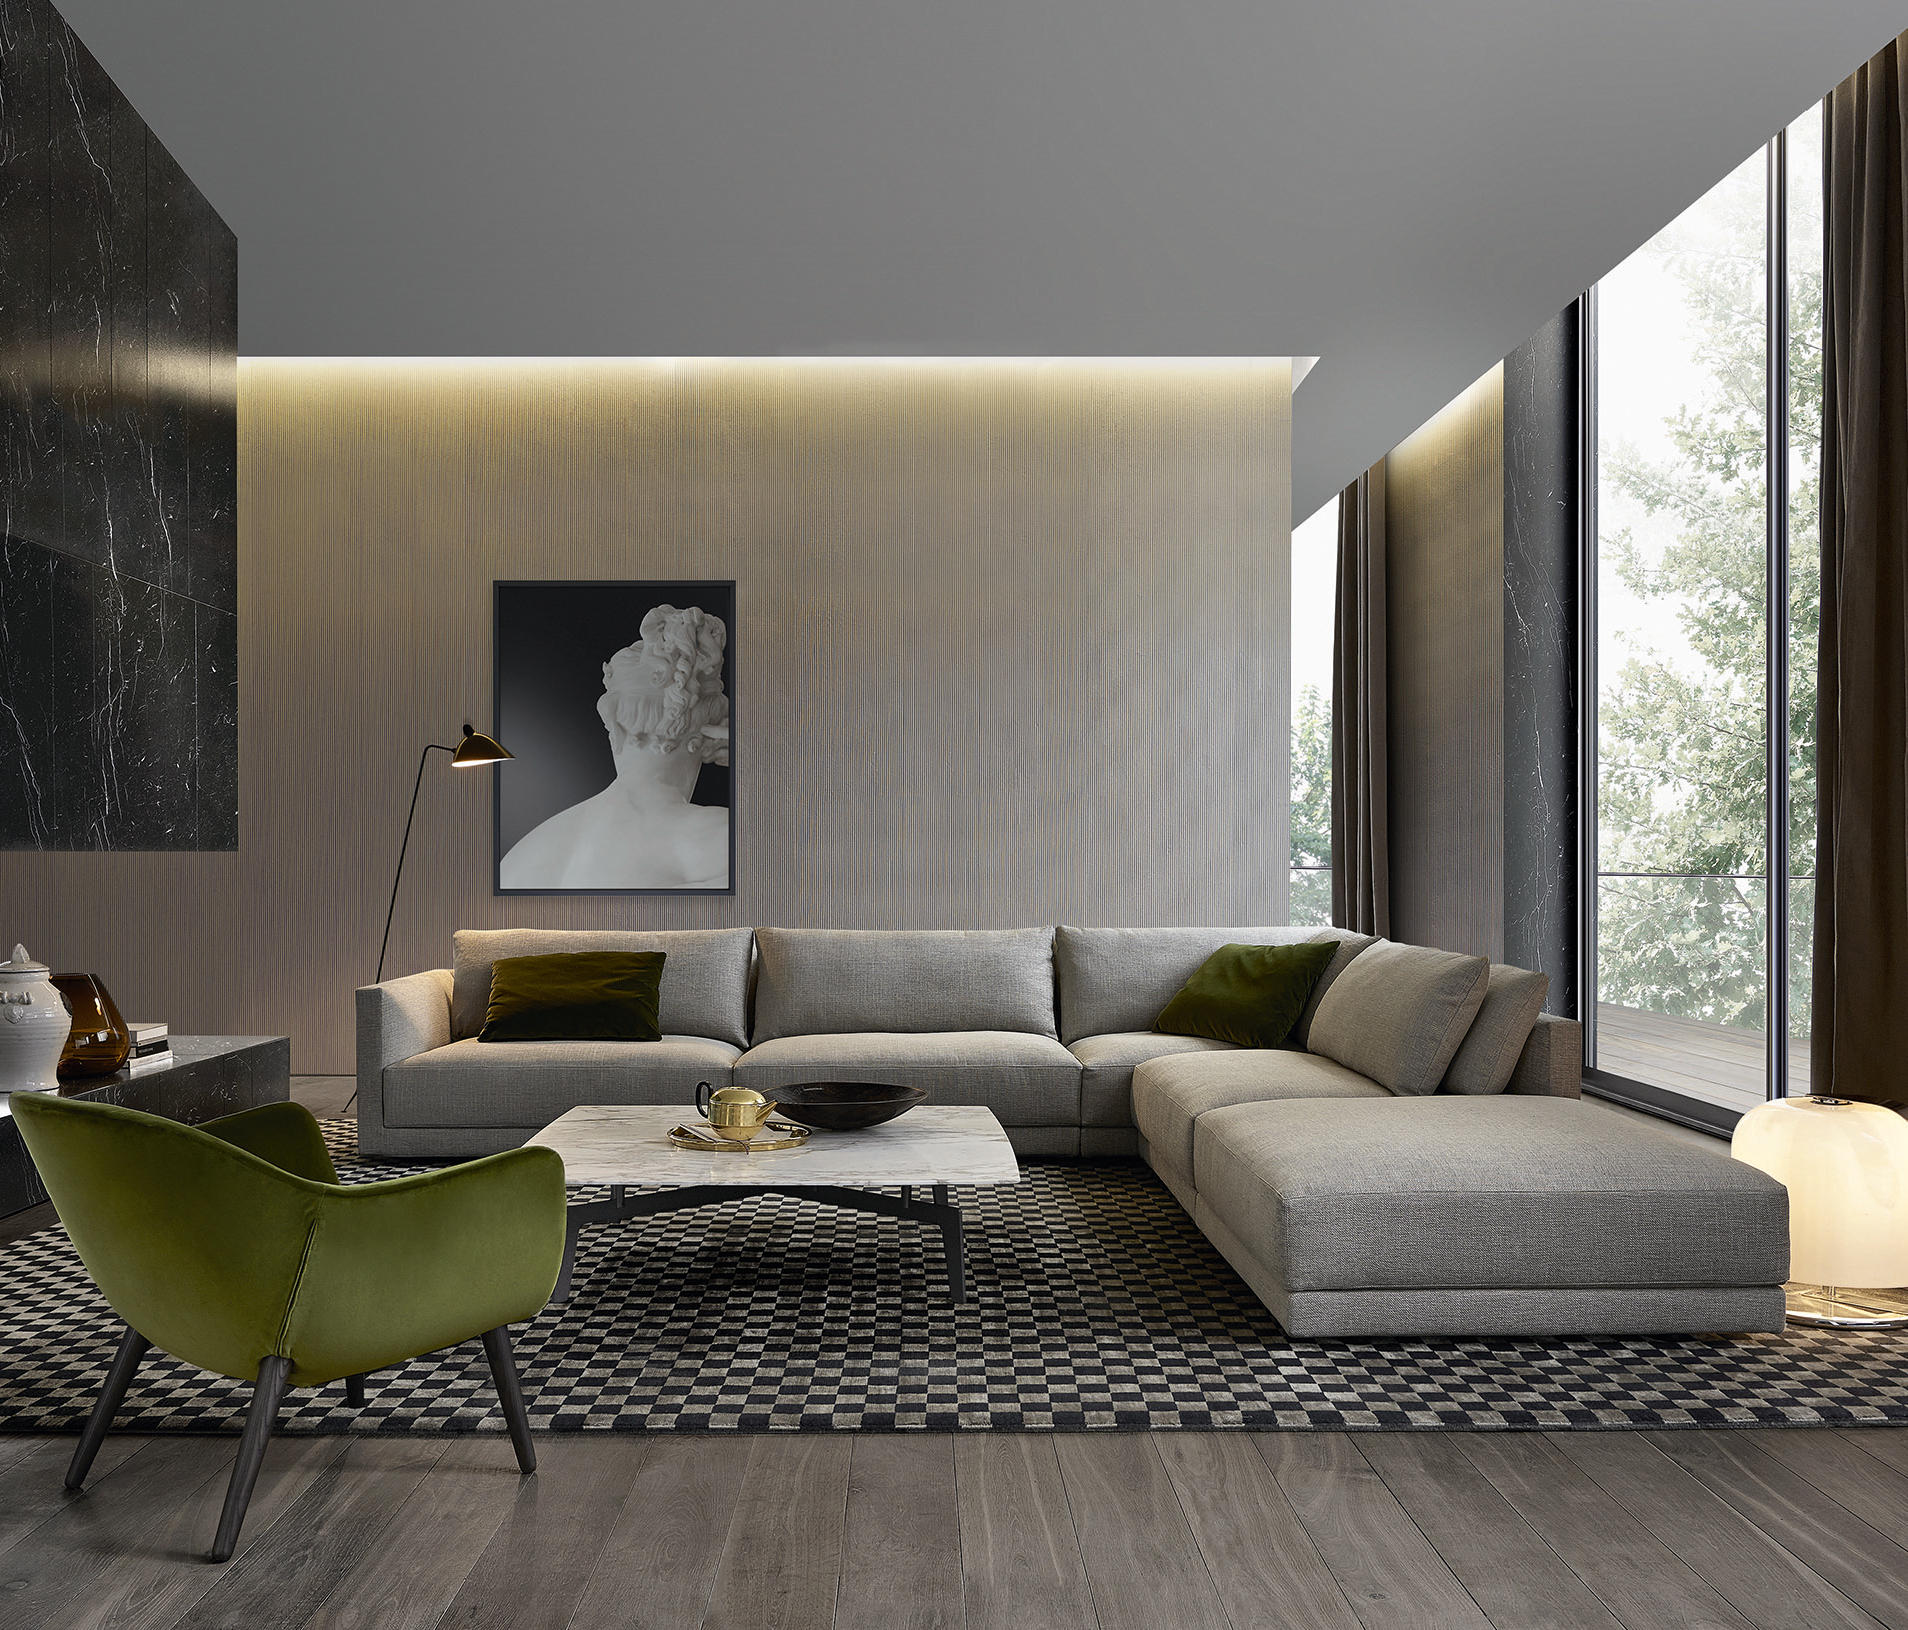 BRISTOL SOFA - Sofas from Poliform | Architonic